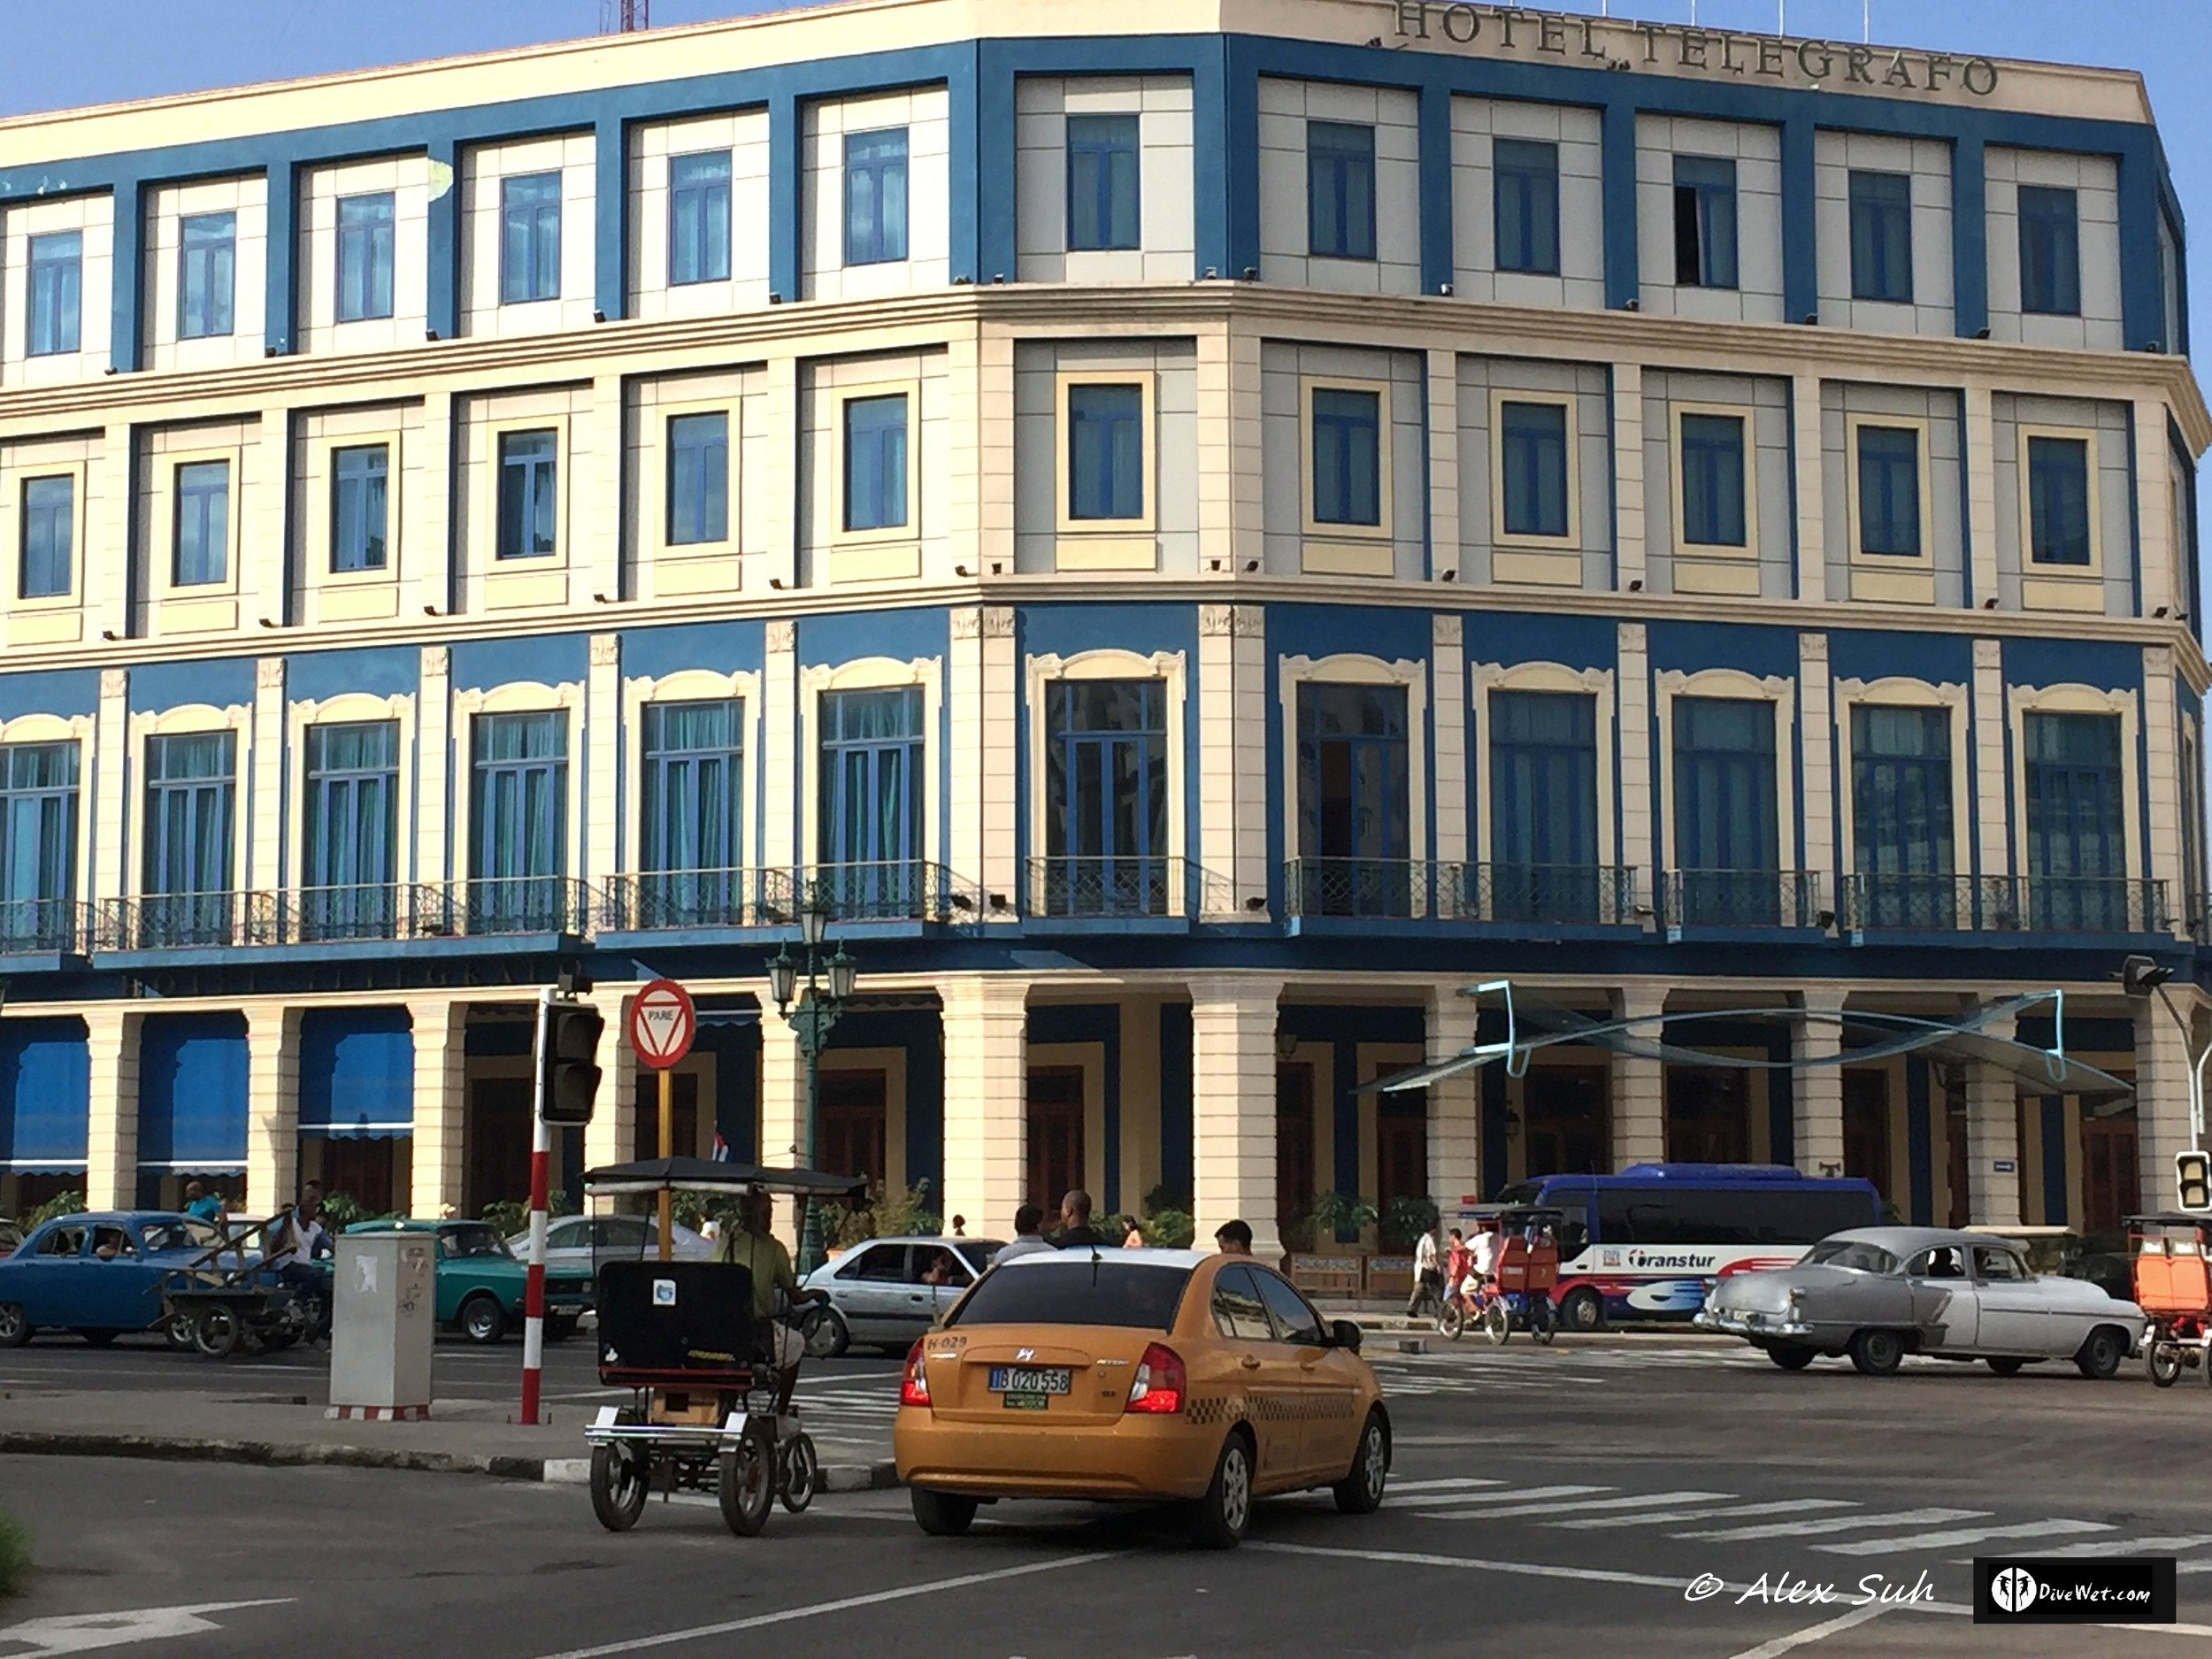 Hotel Telegrafo in Old Havana